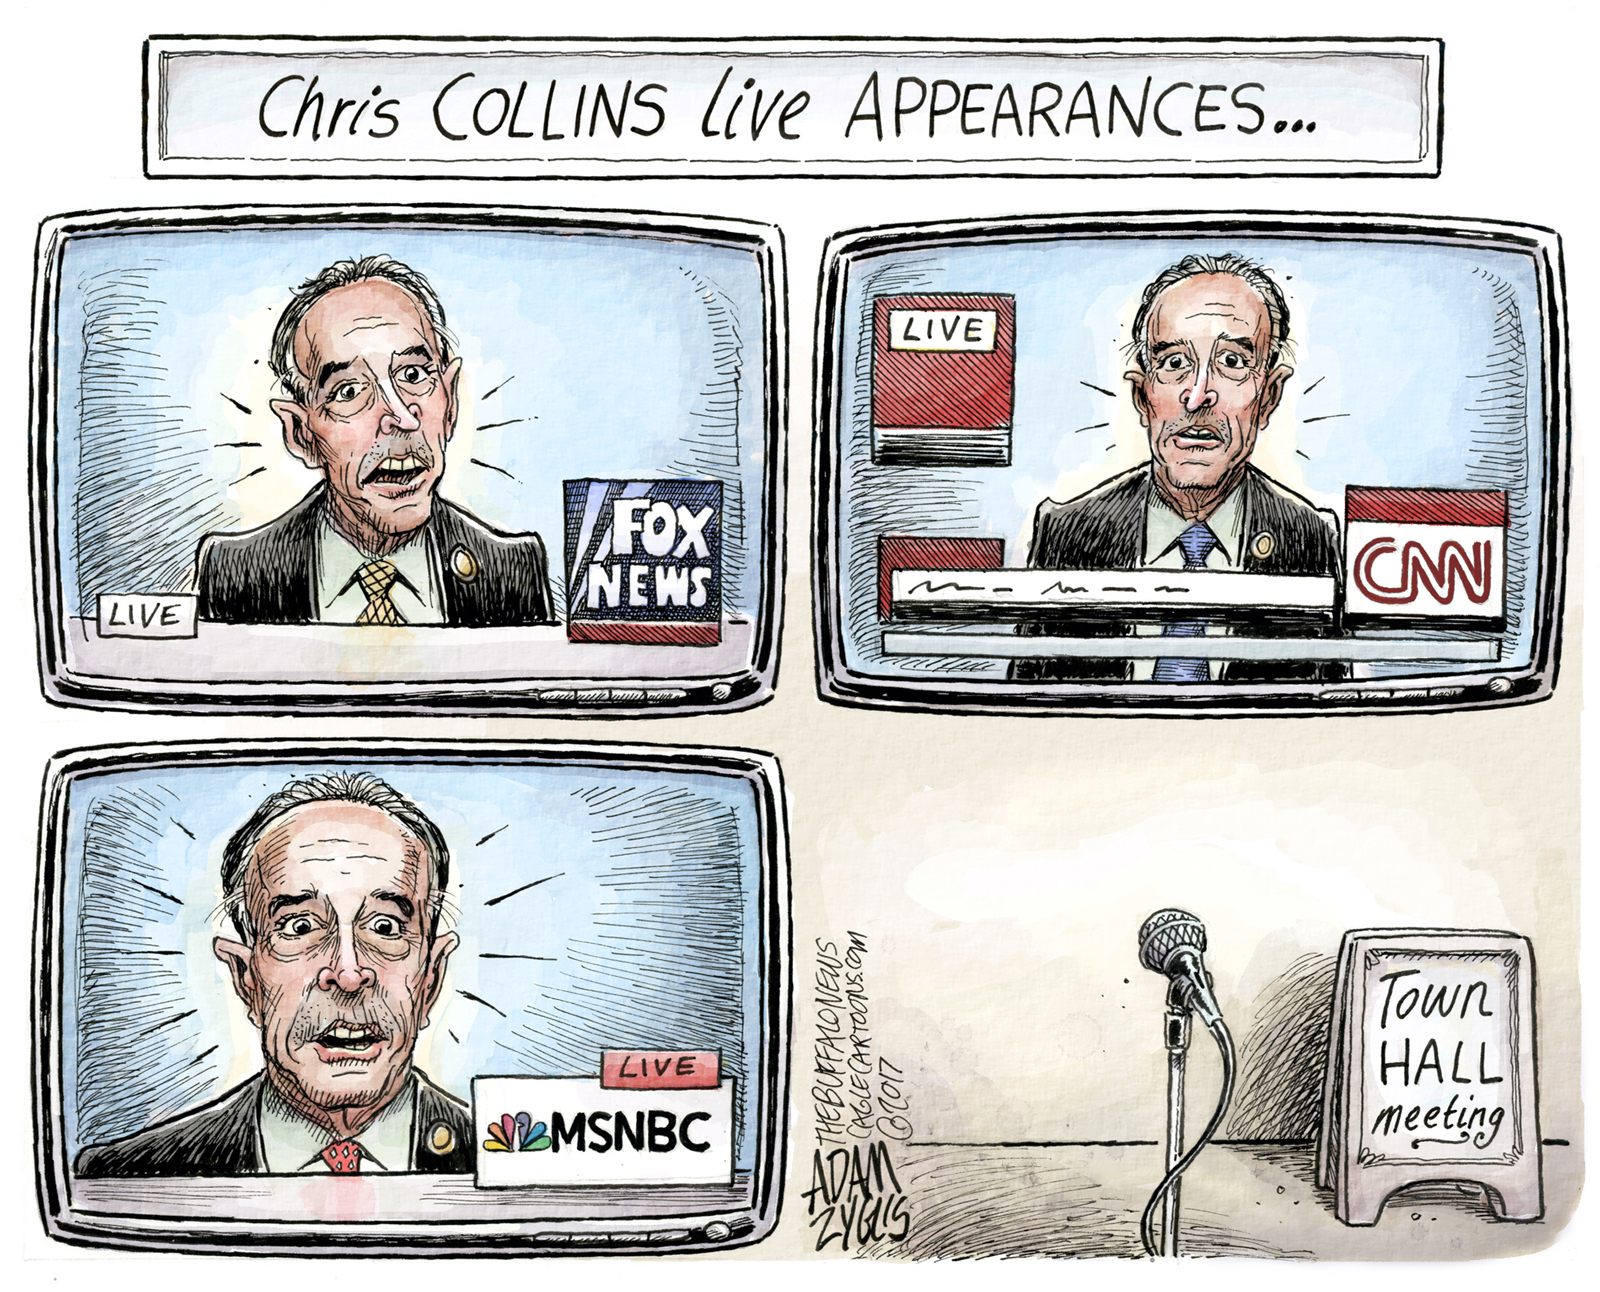 Chris Collins, the former Erie County executive and current congressman recently indicted for insider trading, has been a frequent subject of Adam Zyglis' editorial cartoons. Here's a look back through some of his appearances.